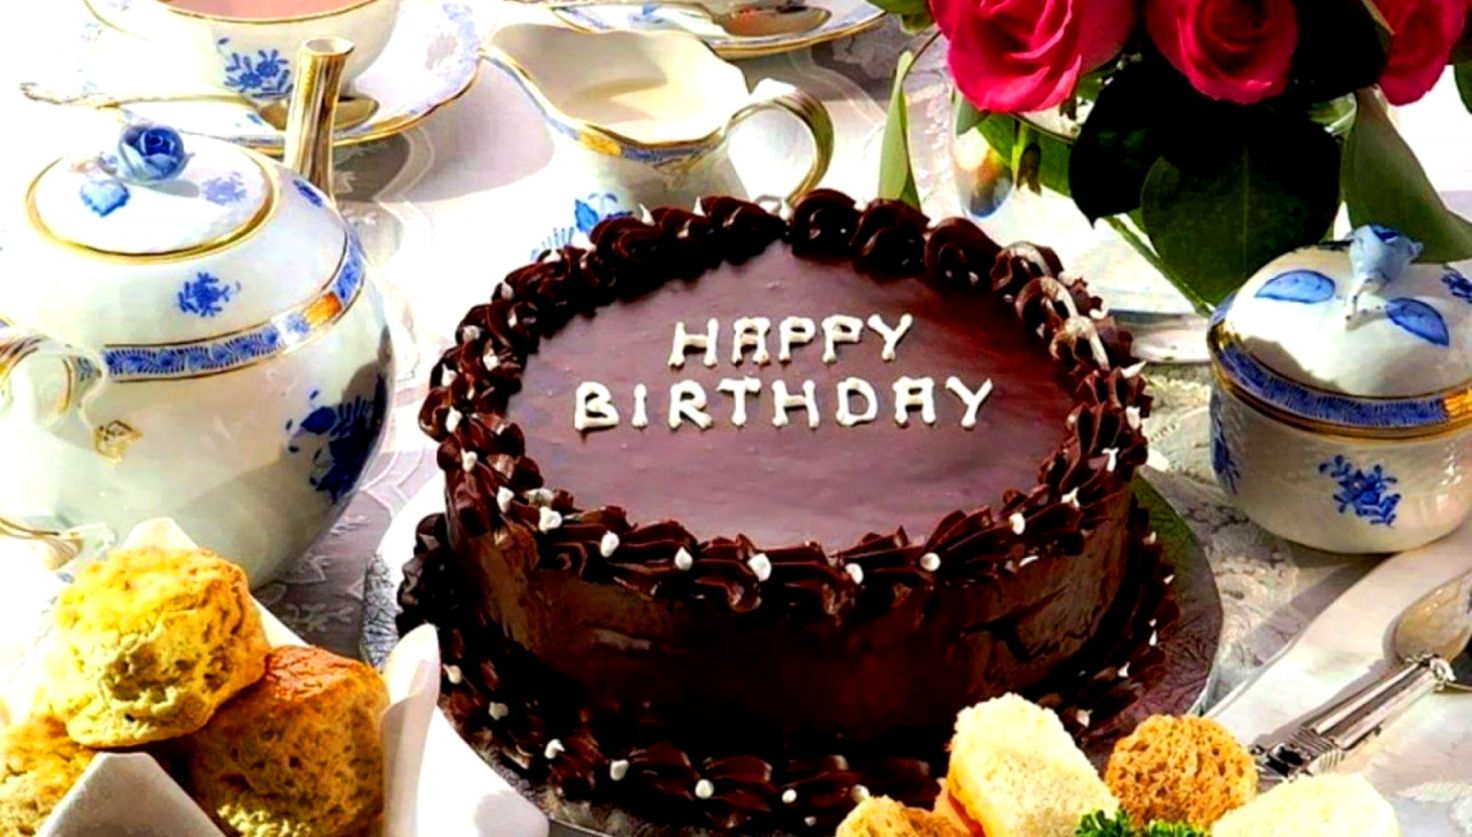 Happy Birthday Cake Hd Wallpaper Wallpapers Beautiful